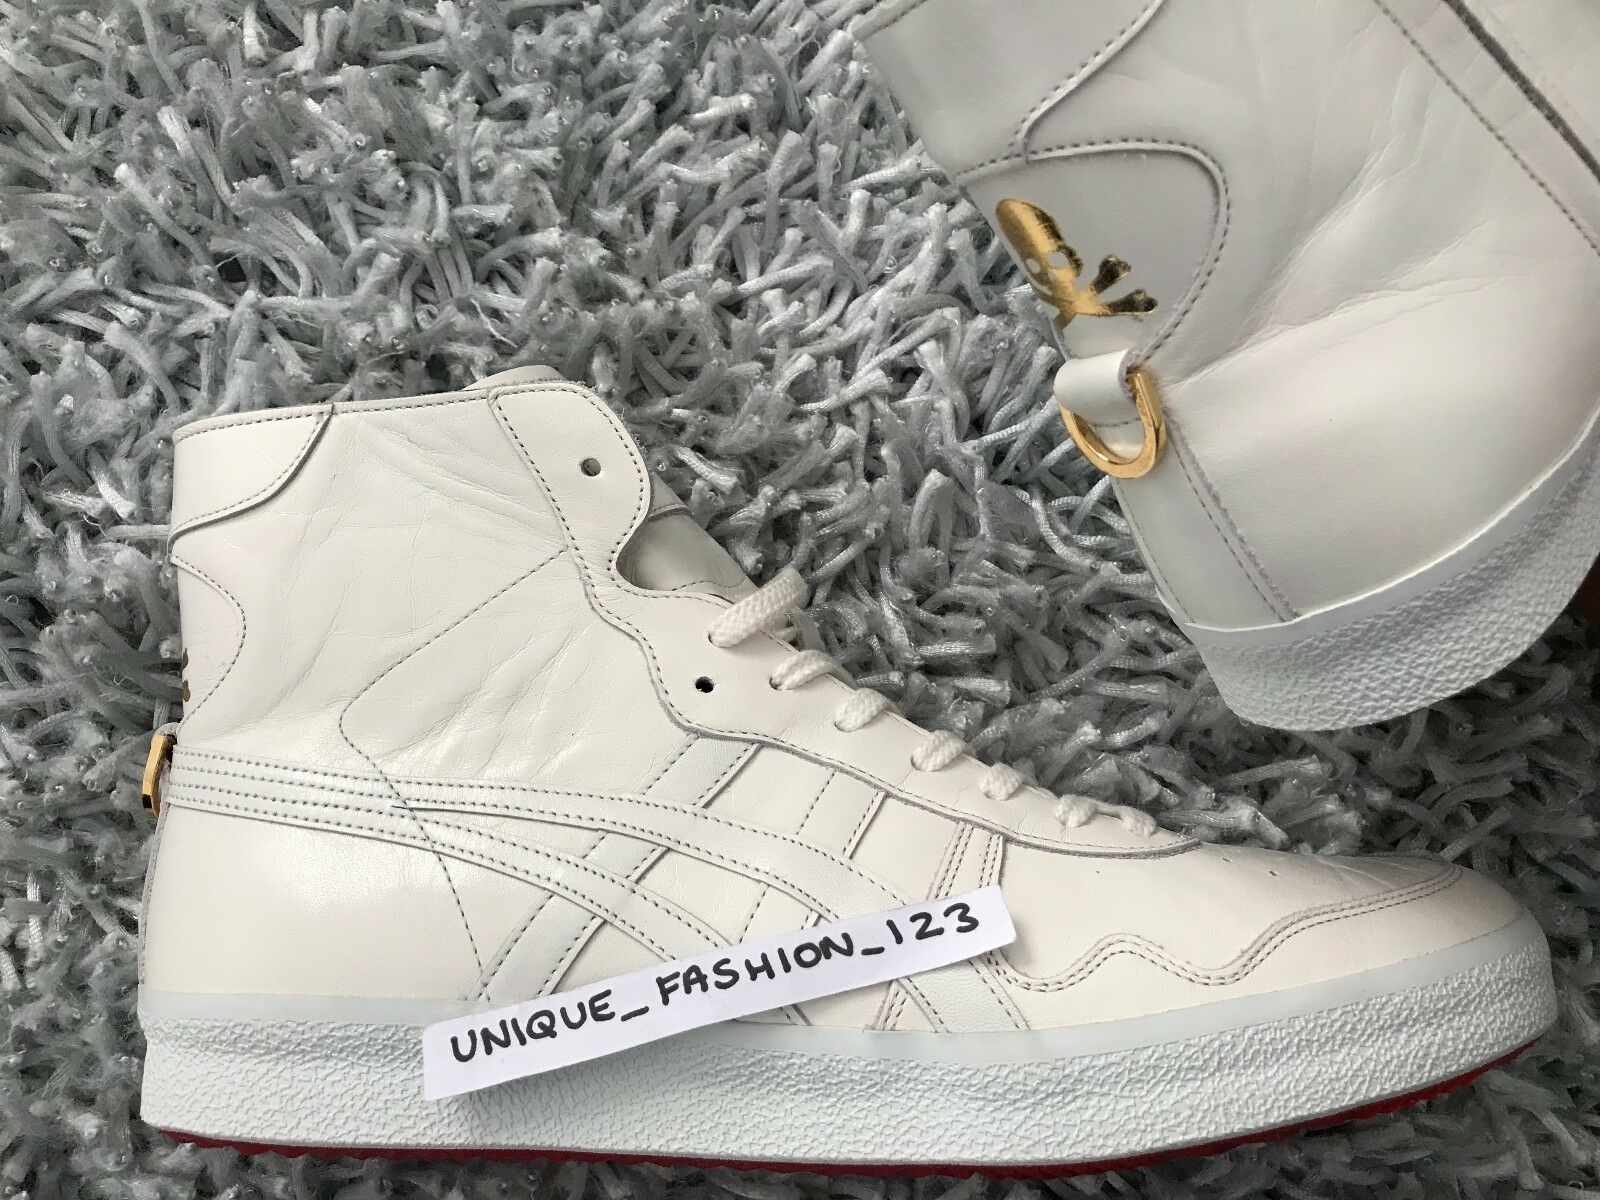 ONITSUKA TIGER MASTERMIND JAPAN MMJ 8 FABRE NIPPON BASKETBALL SNEAKER Brand discount